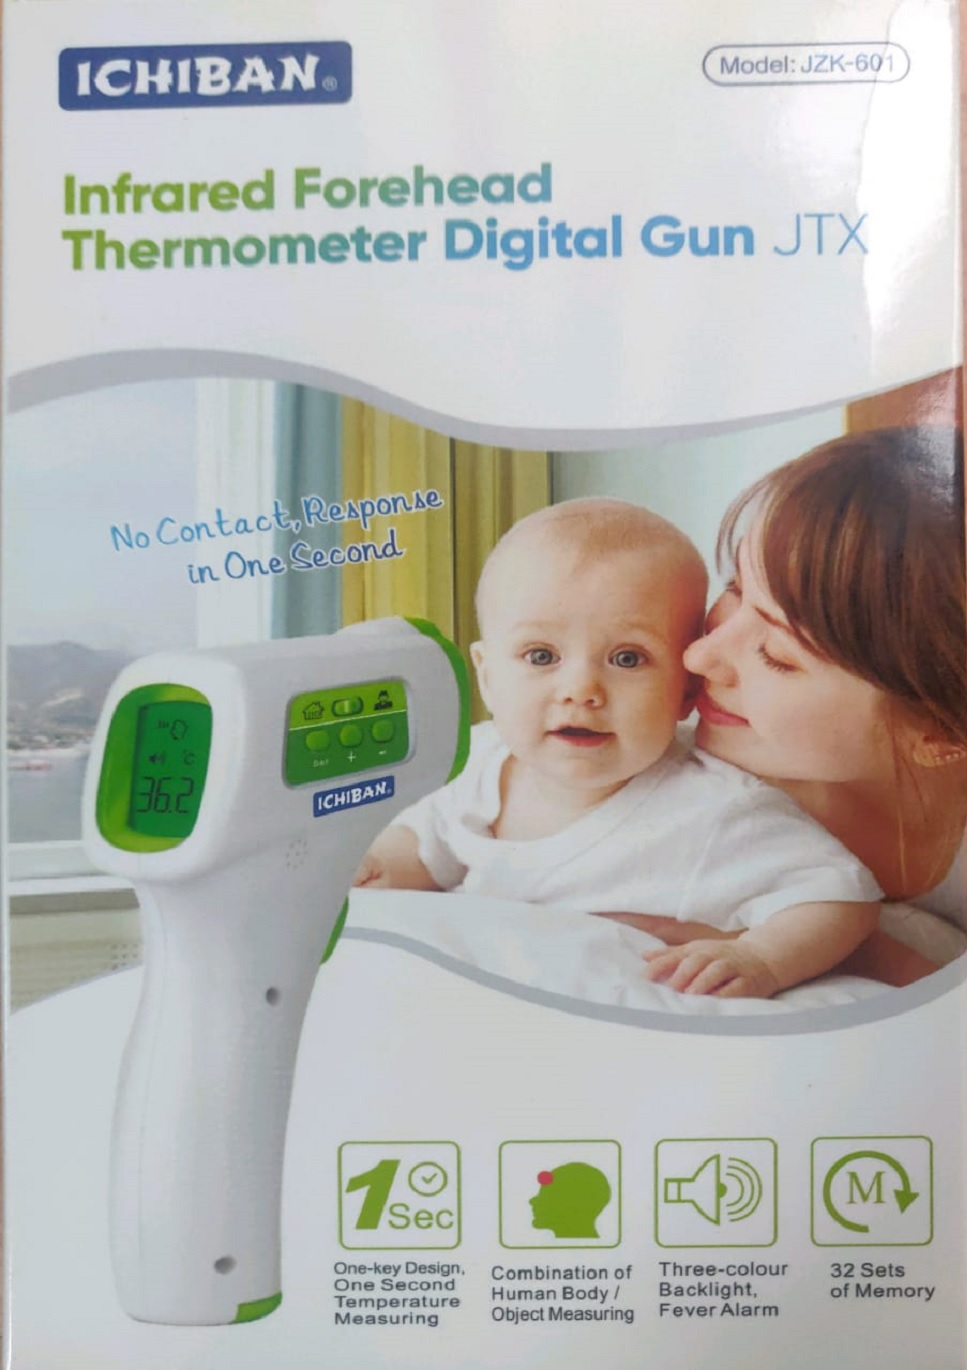 Ichiban Infra Red Forehead  Thermometer Digital GUN JTX